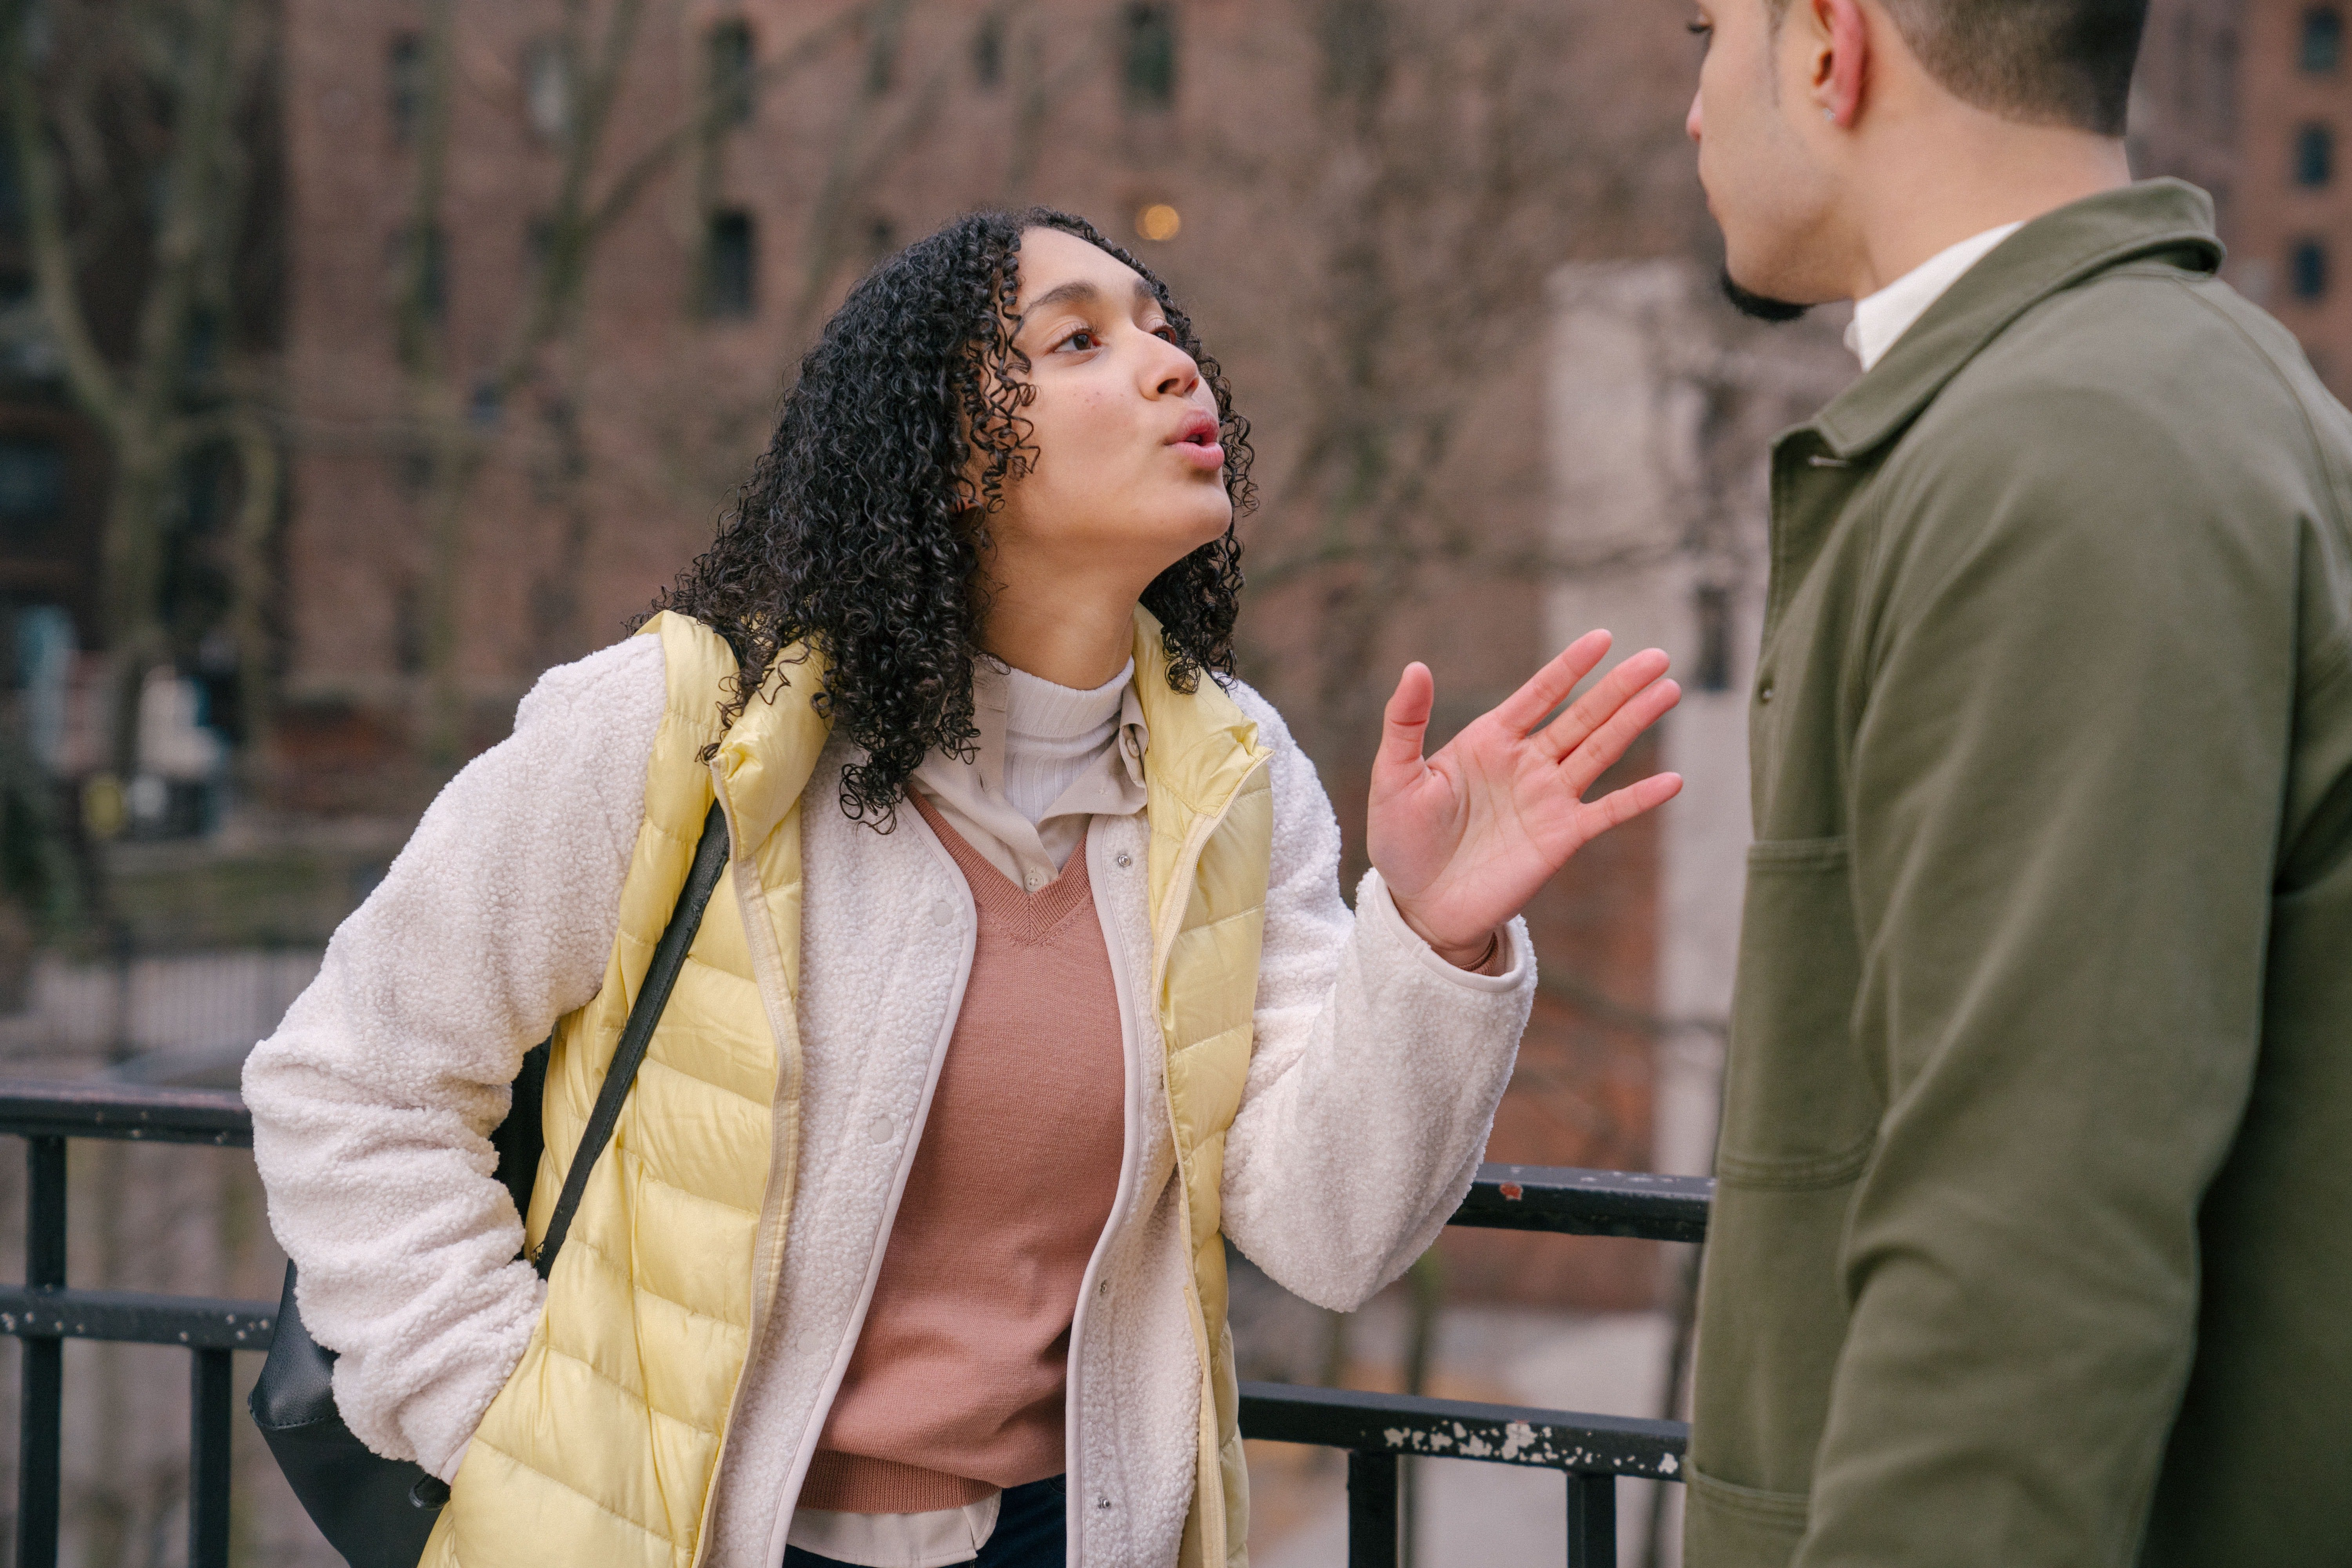 Woman asking a man to back off   Photo: Pexels